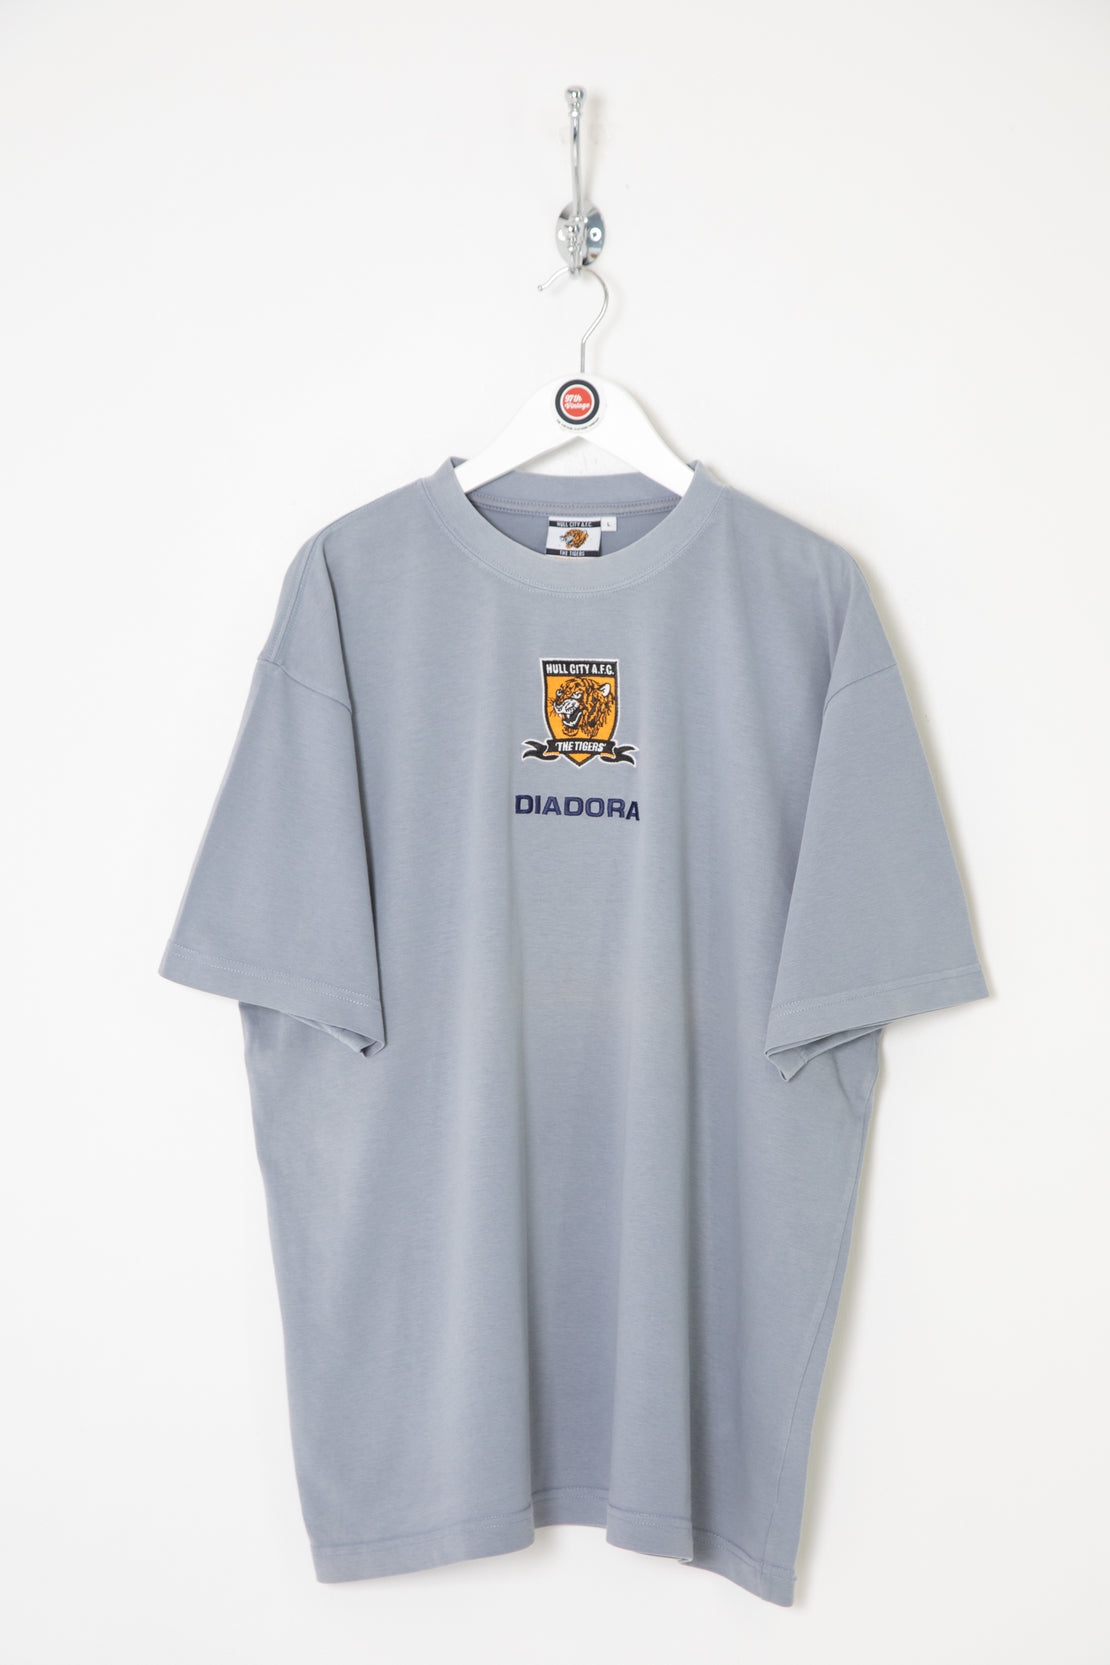 Diadora Hull City T-Shirt (XL)